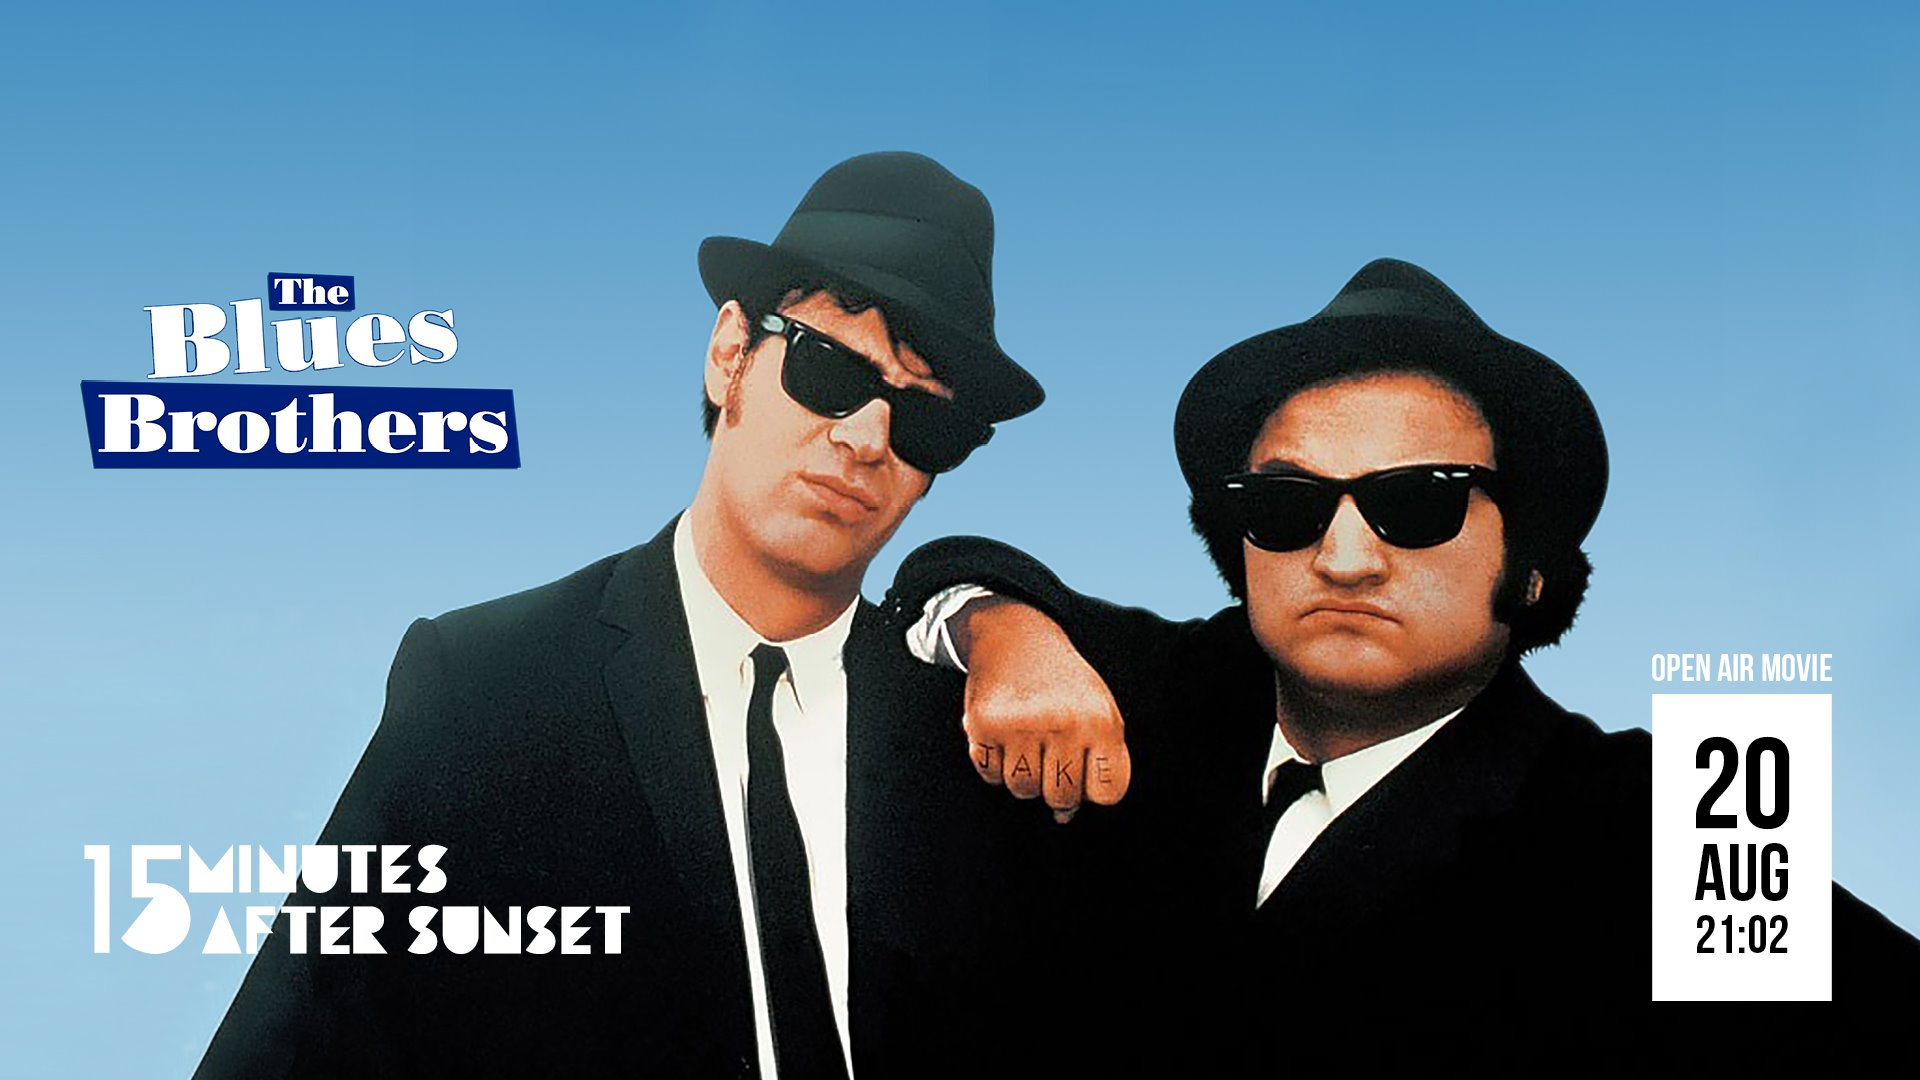 15 minutes after sunset - The Blues Brothers